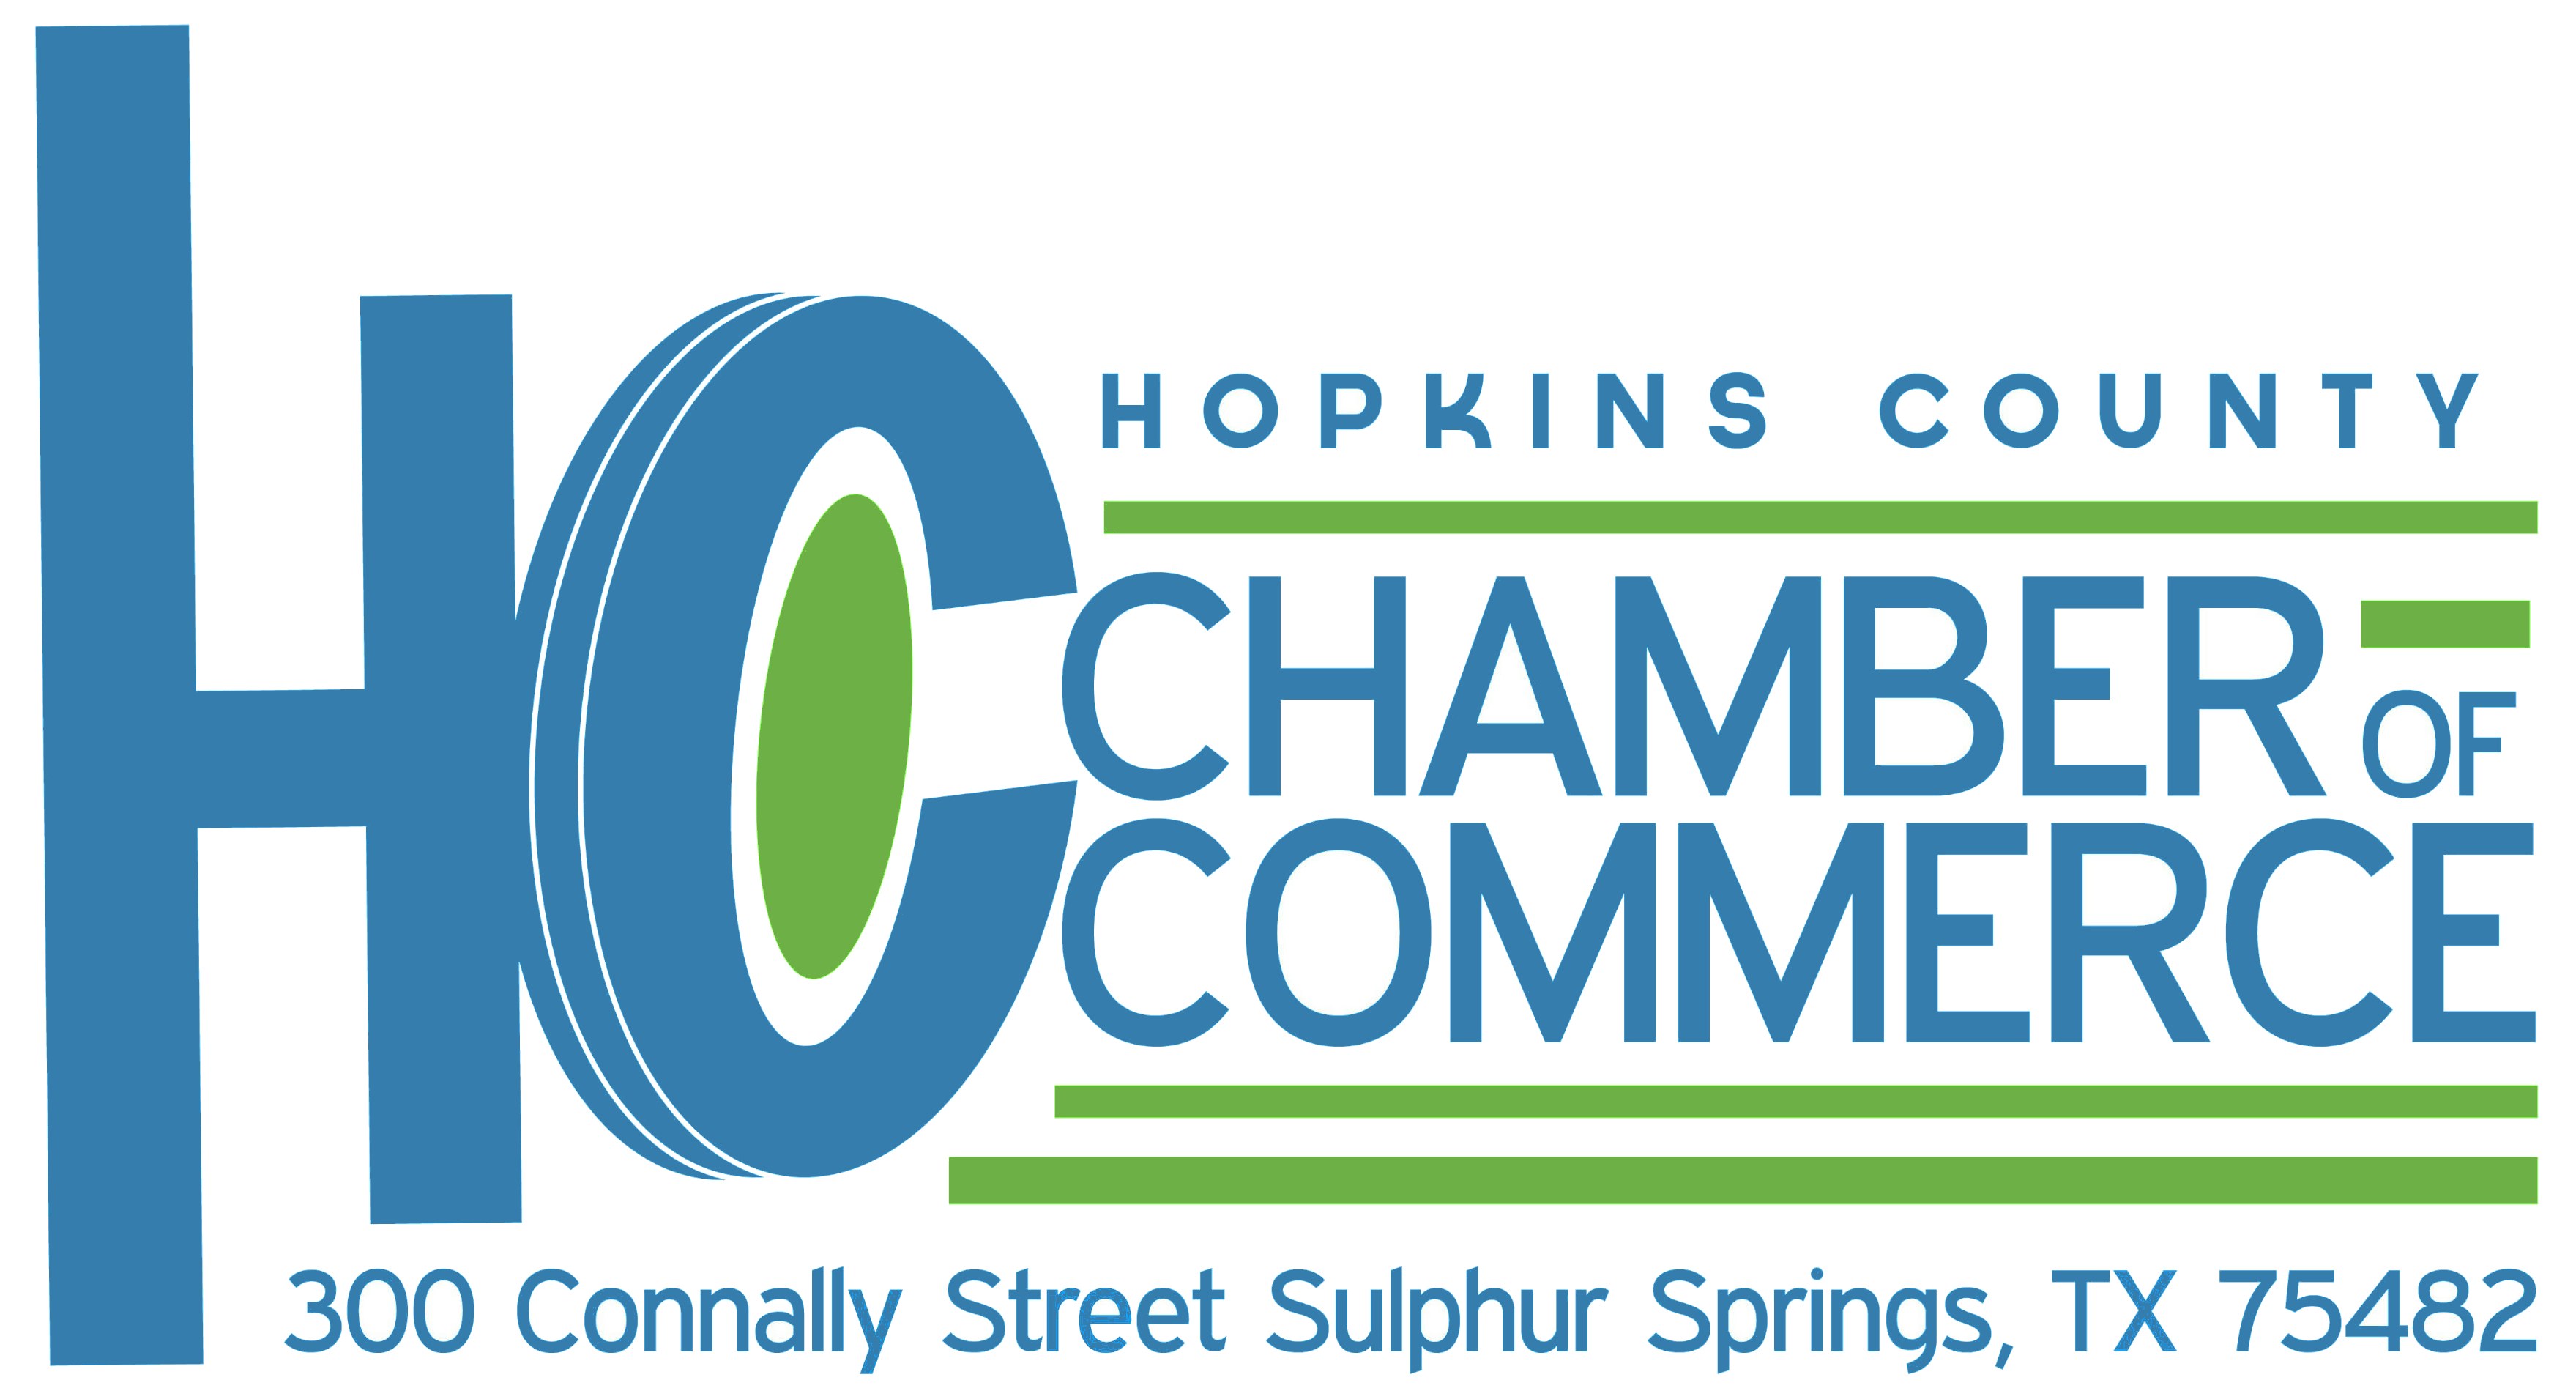 Hopkins County Chamber of Commerce